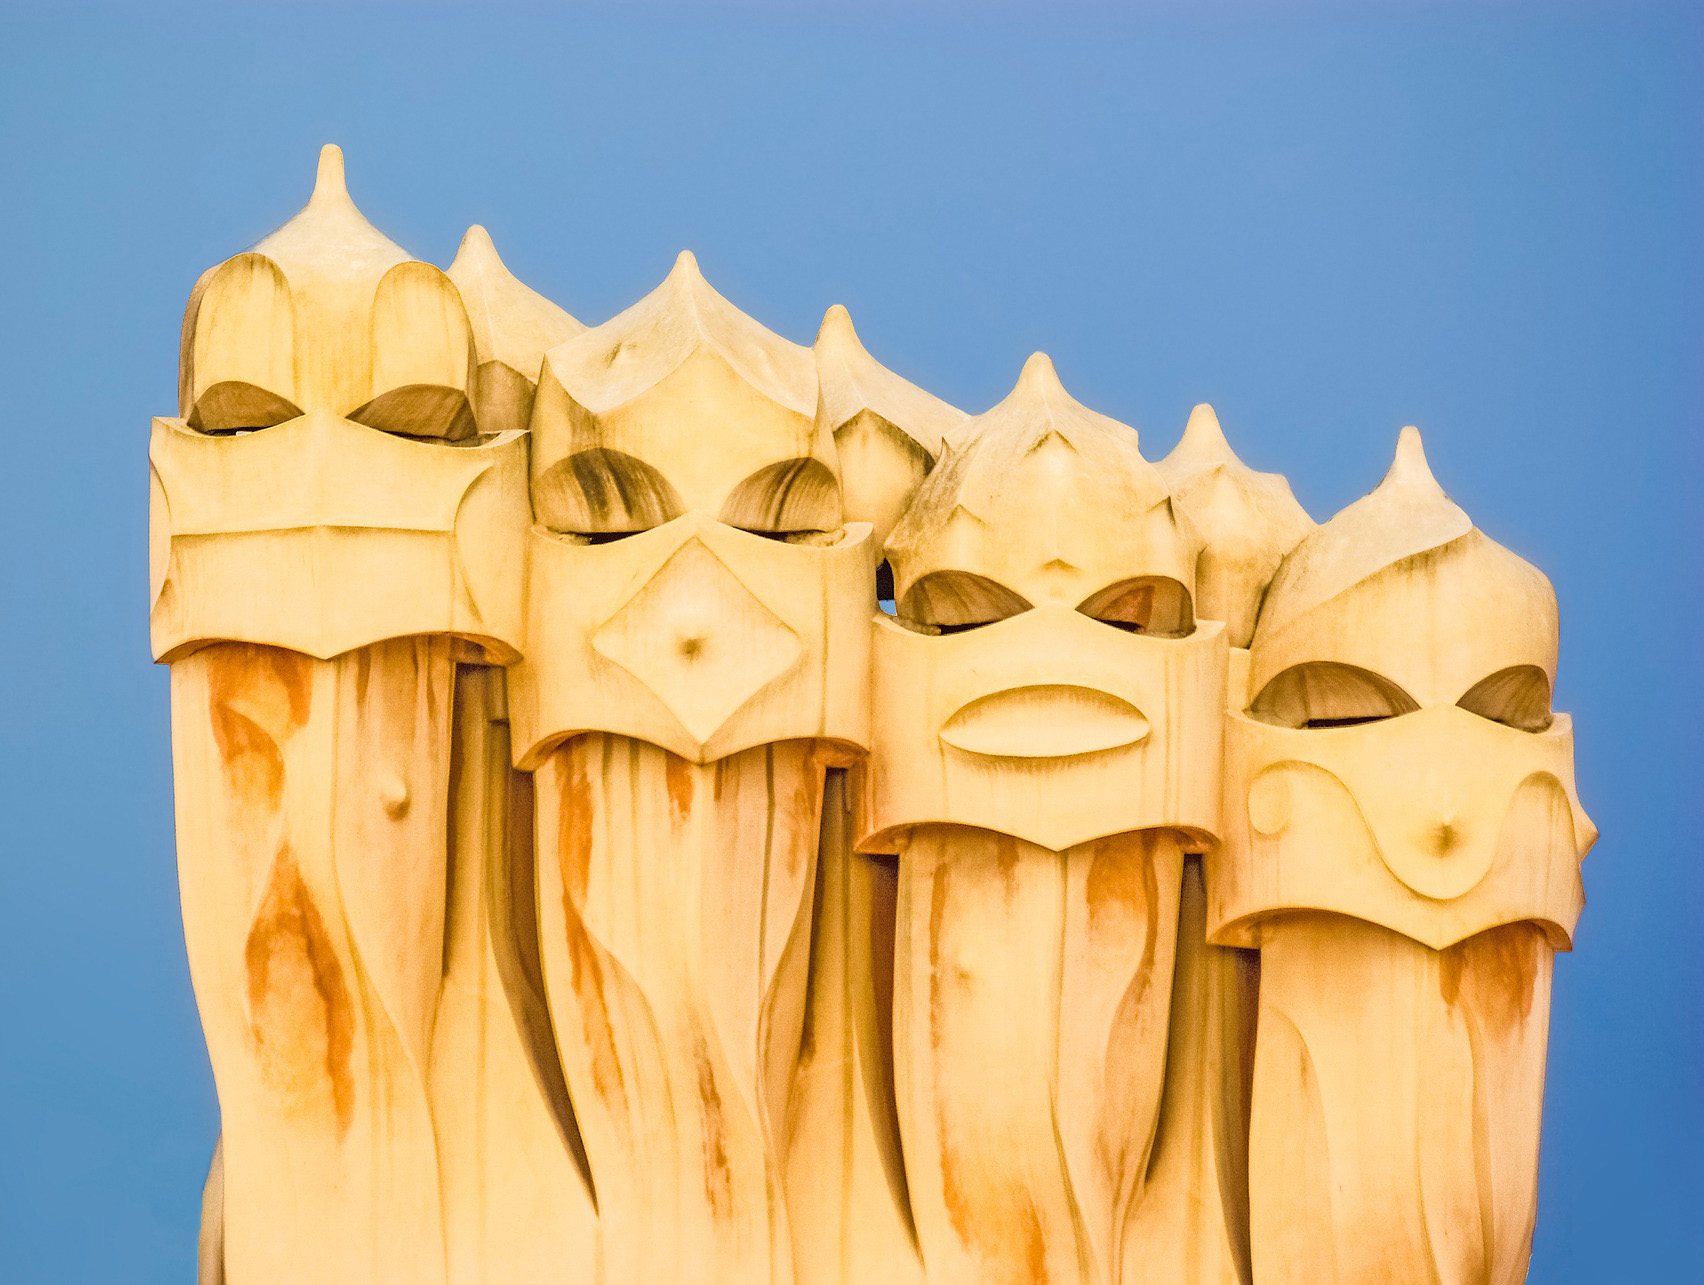 """A piece of architecture from Casa Milà (popularly known as La Pedrera or """"The Stone Quarry"""", a reference to its unconventional rough-hewn appearance. This is a modernist building in Barcelona designed by architect Antoni Gaudí built between 1906 and 1912."""